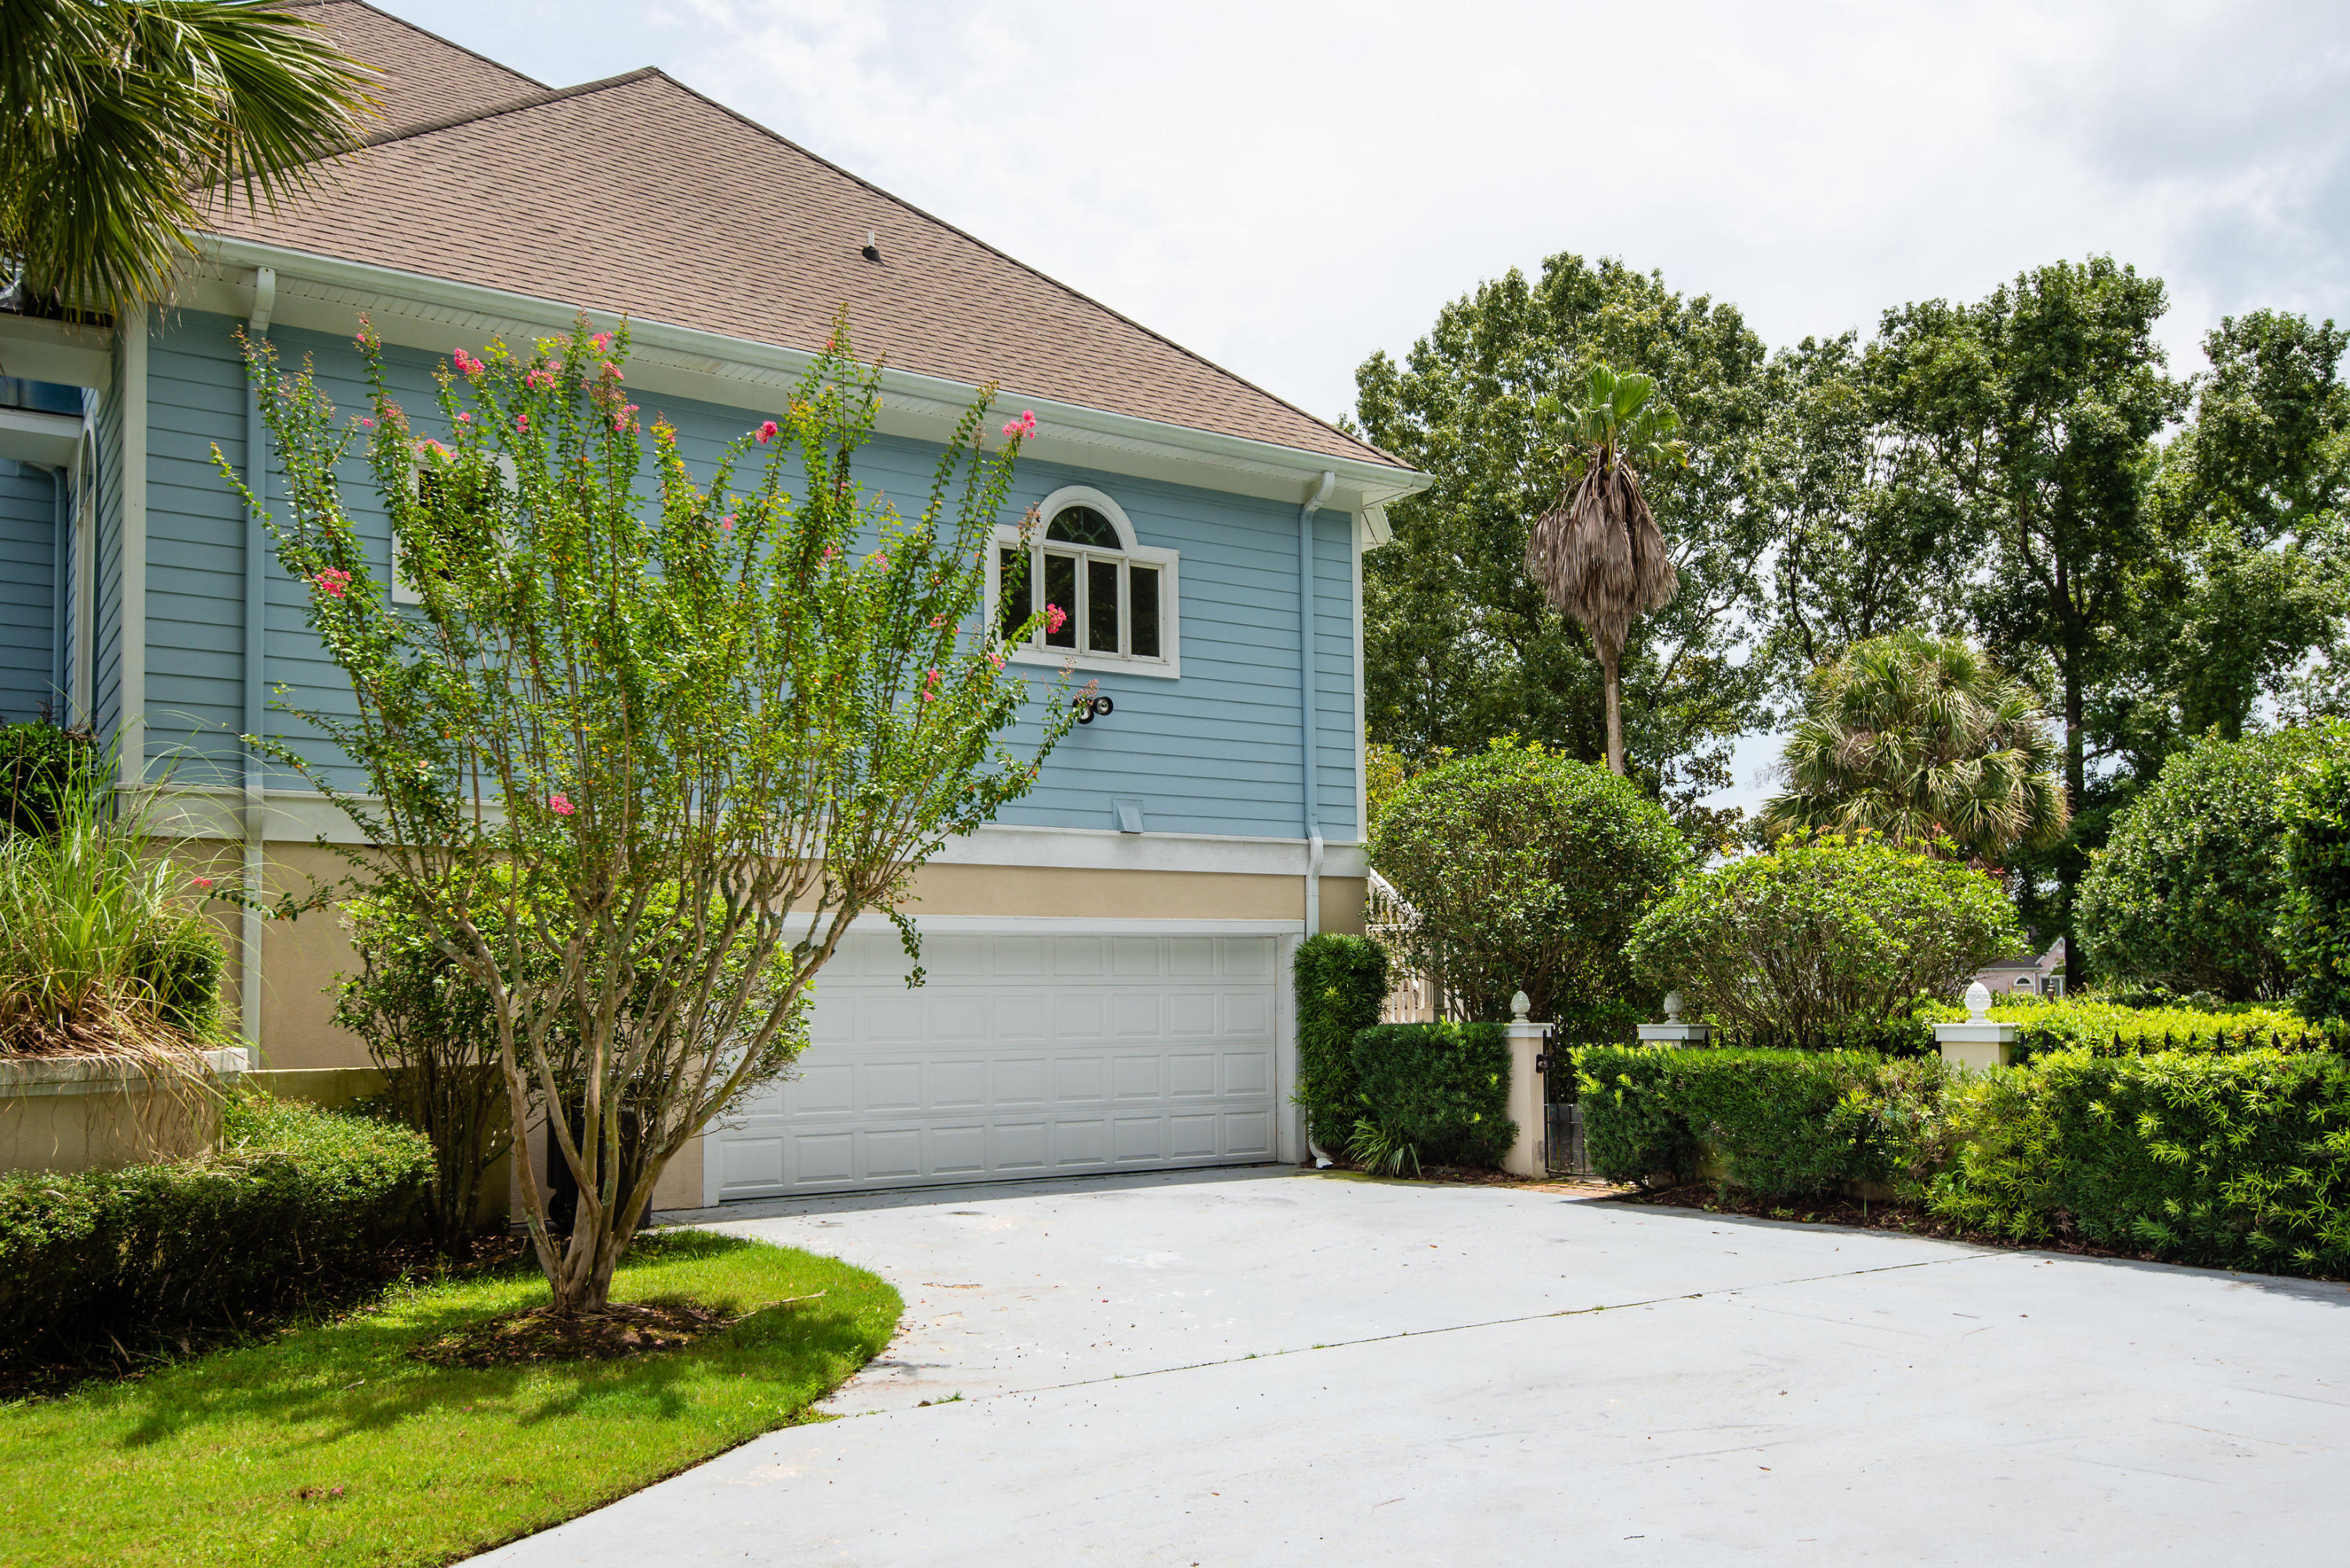 Dunes West Homes For Sale - 2425 Wagner Creek, Mount Pleasant, SC - 1